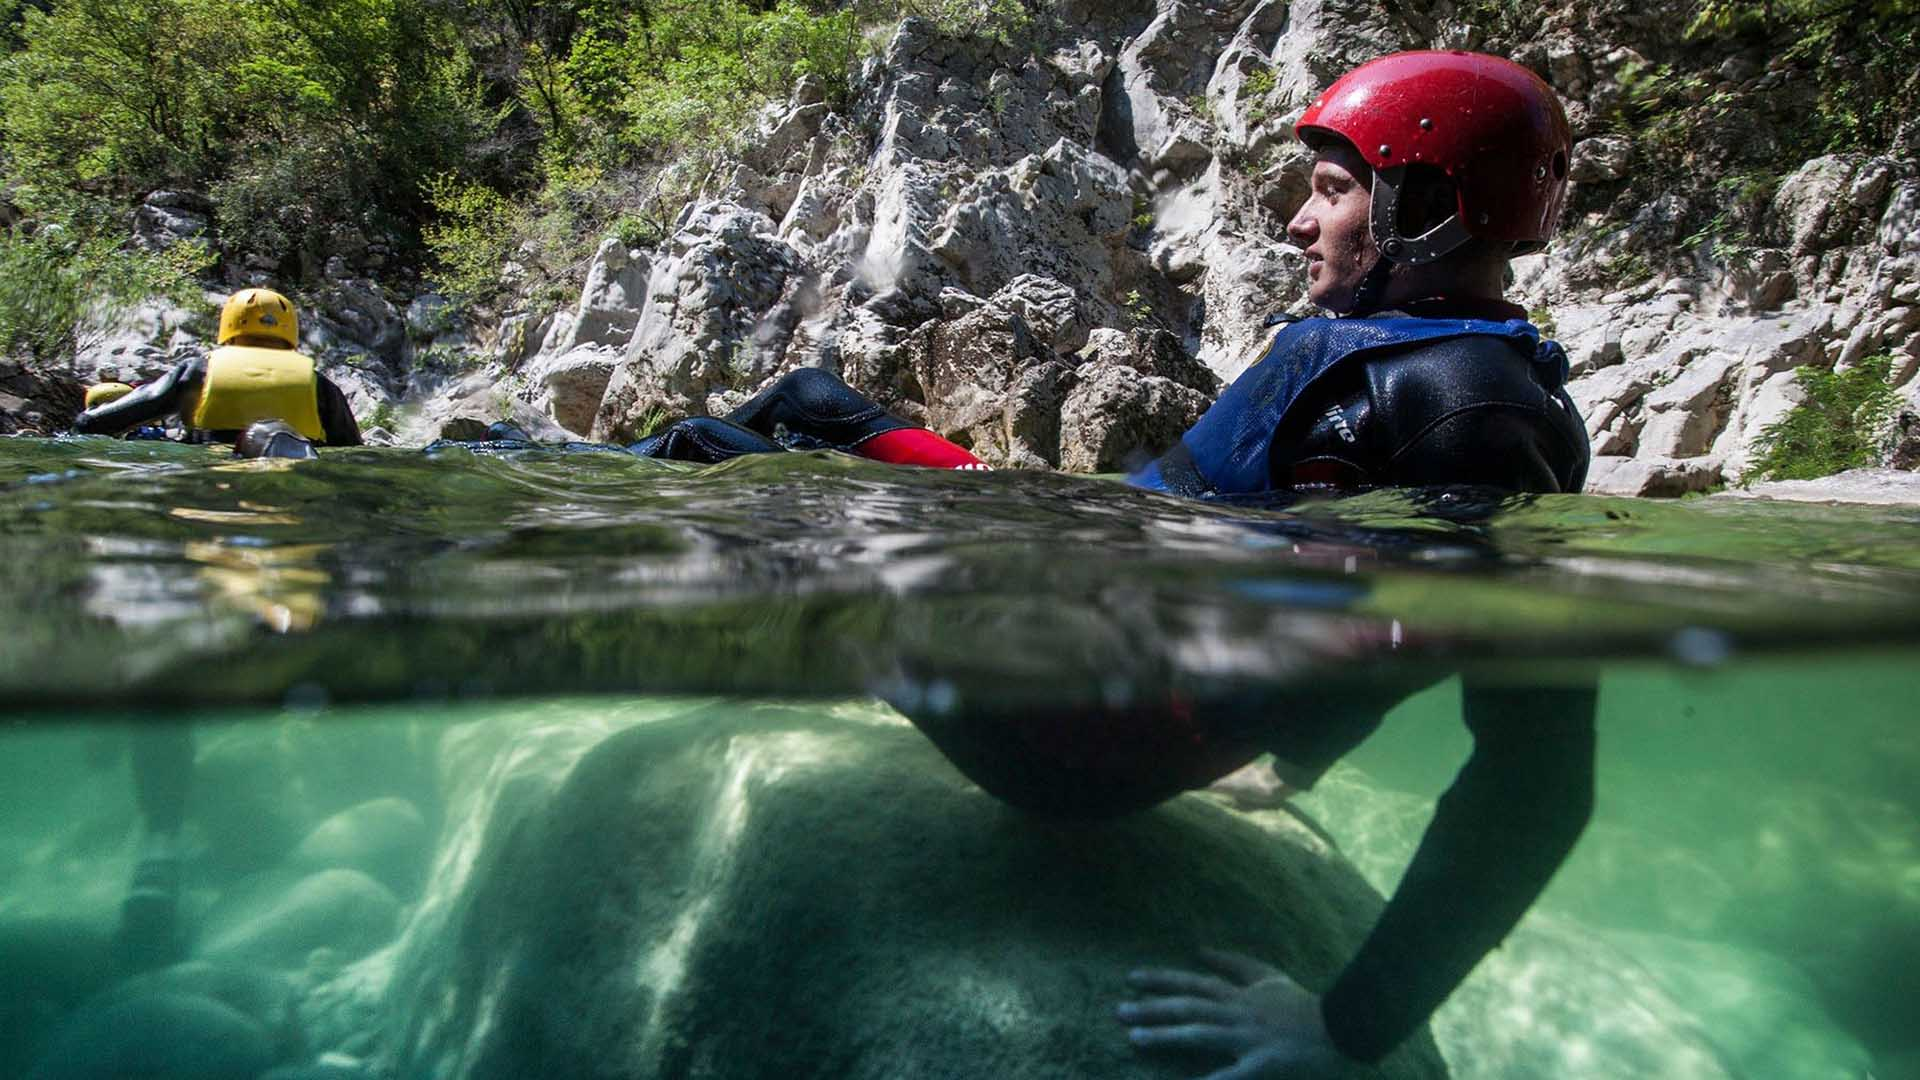 river canyoning adrenaline adventure 9